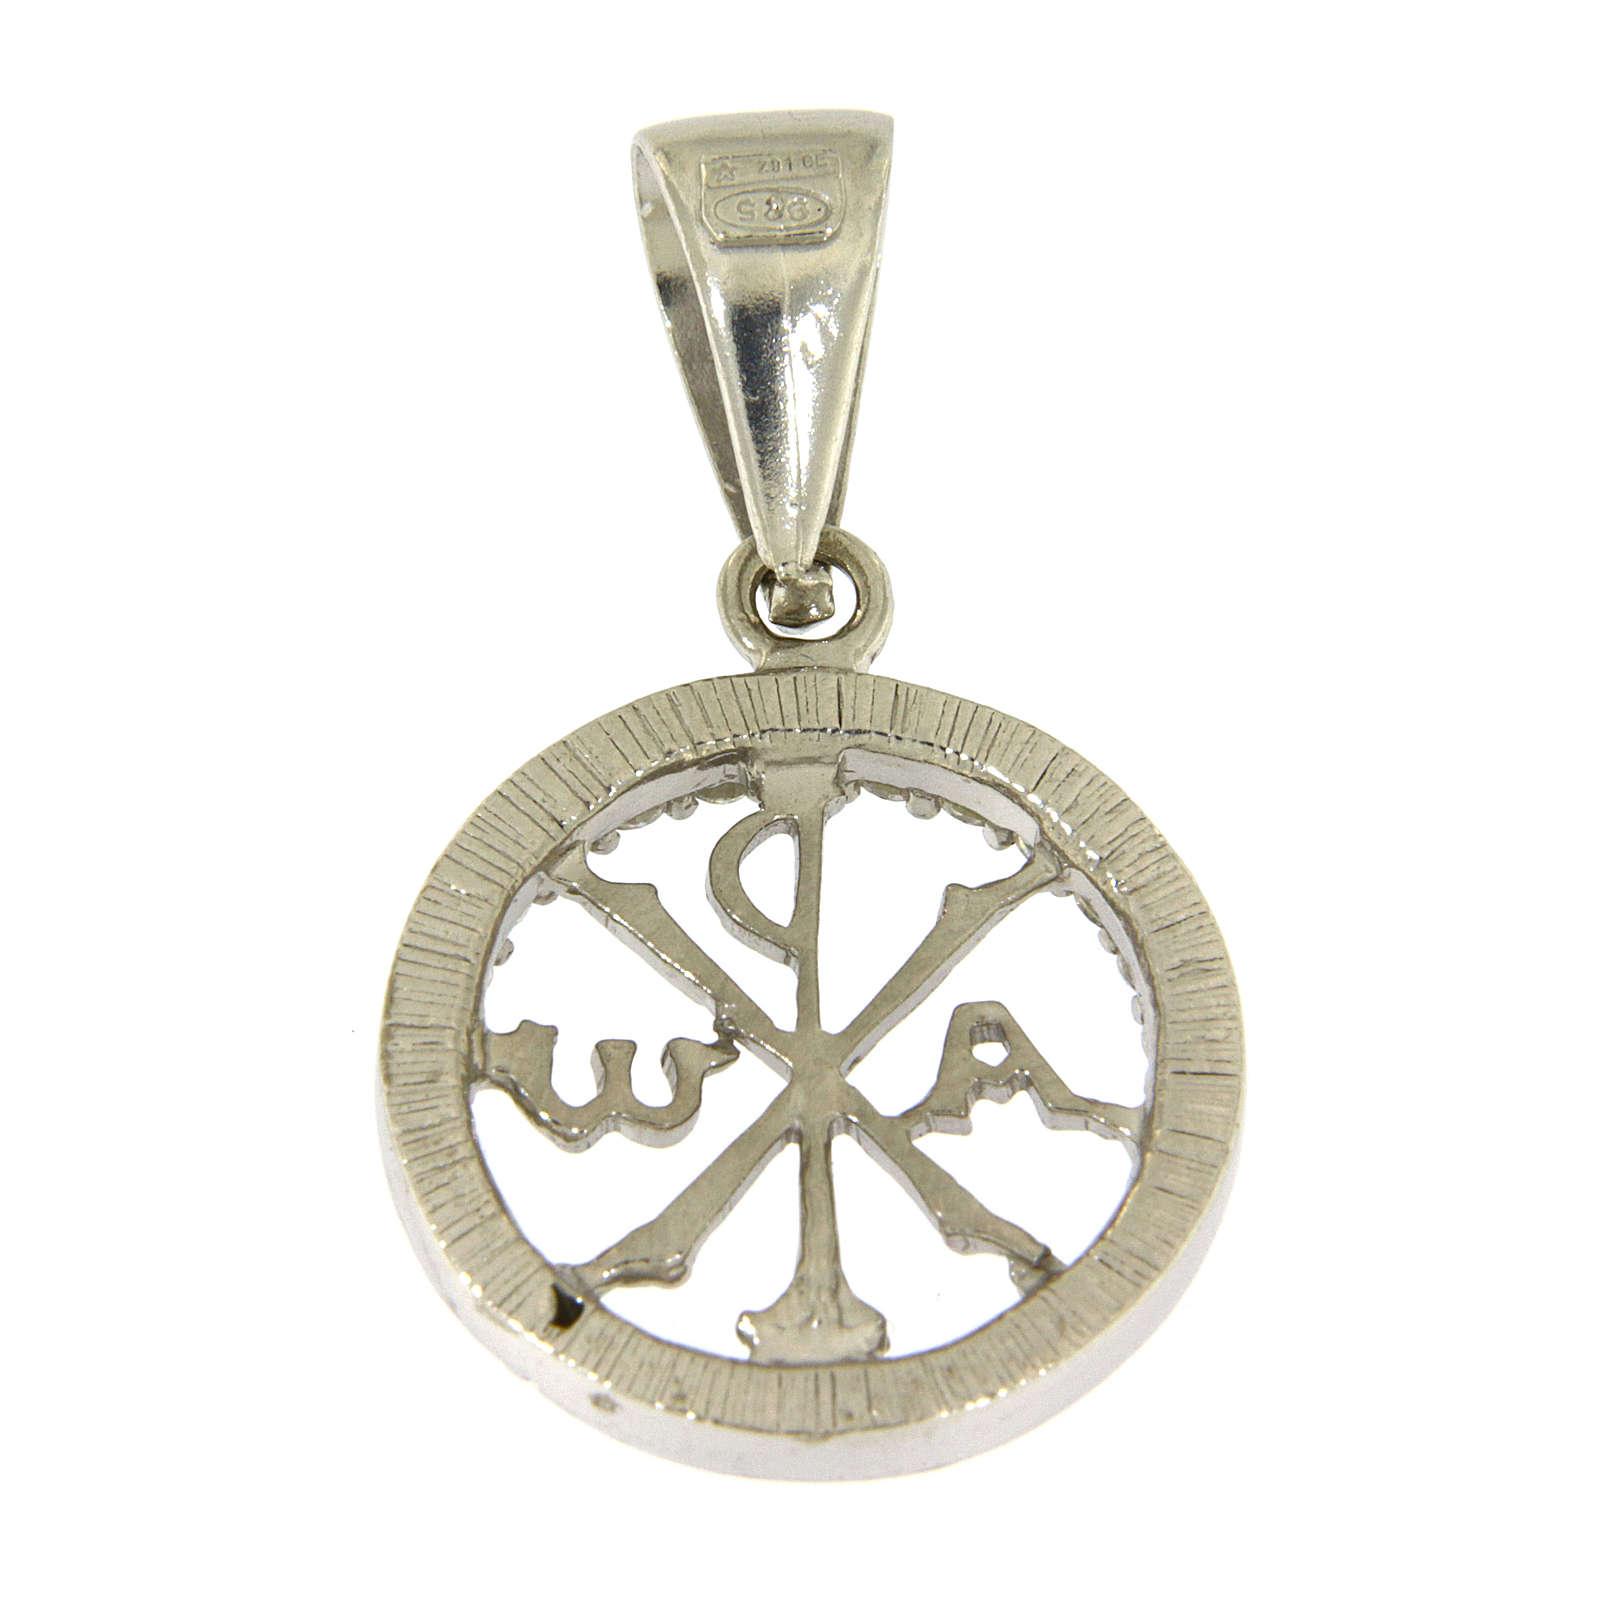 925 sterling silver medal with white zircons and Pax symbol 4